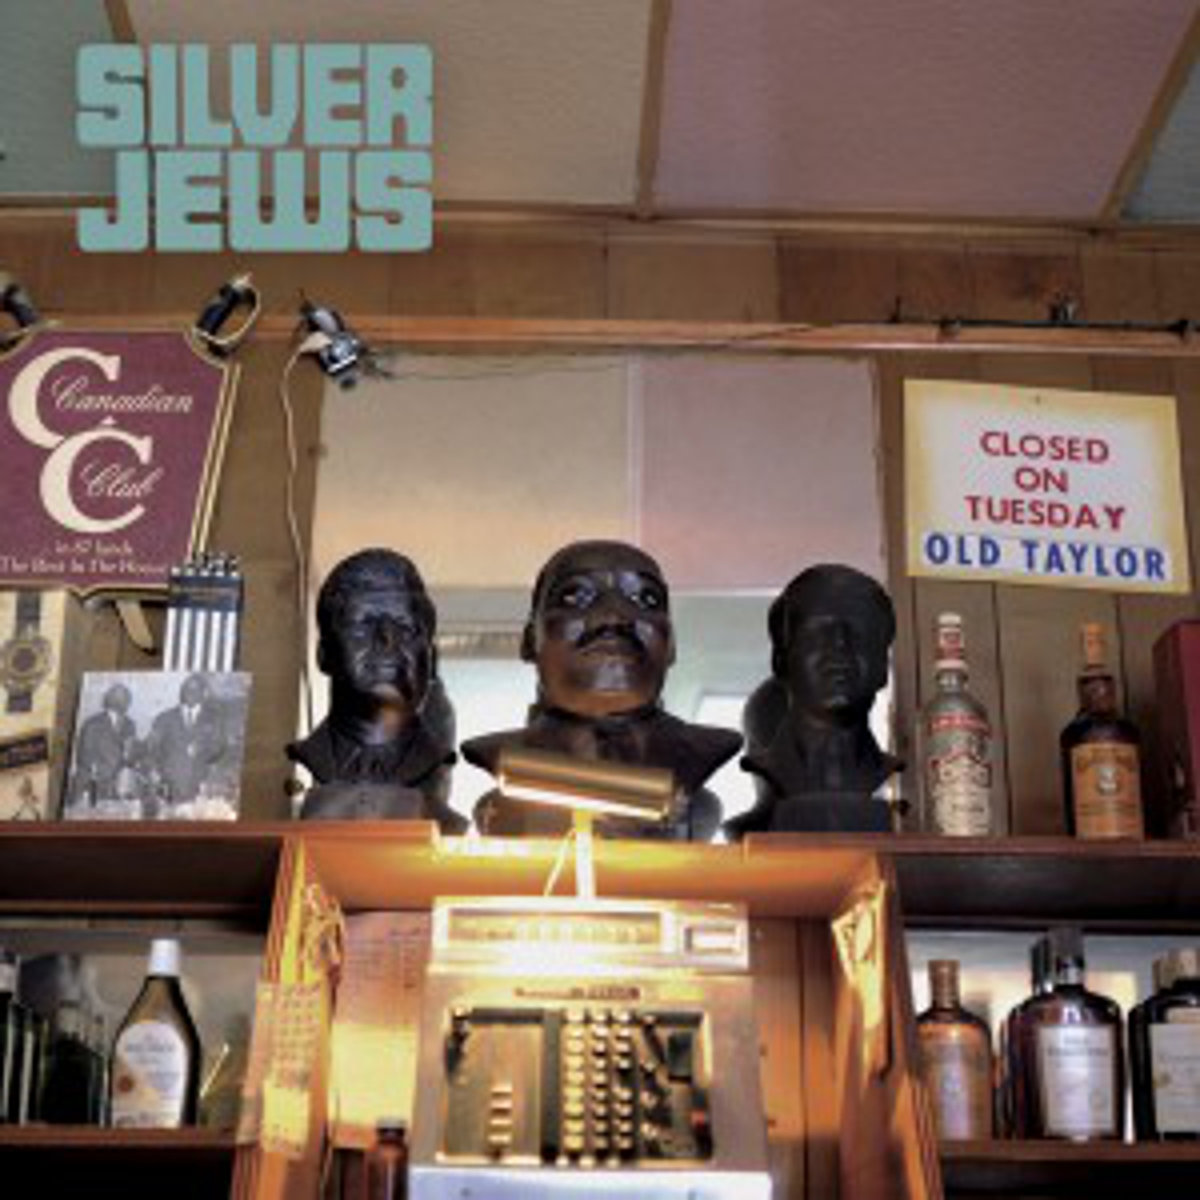 silver jews discography Tanglewood Numberes